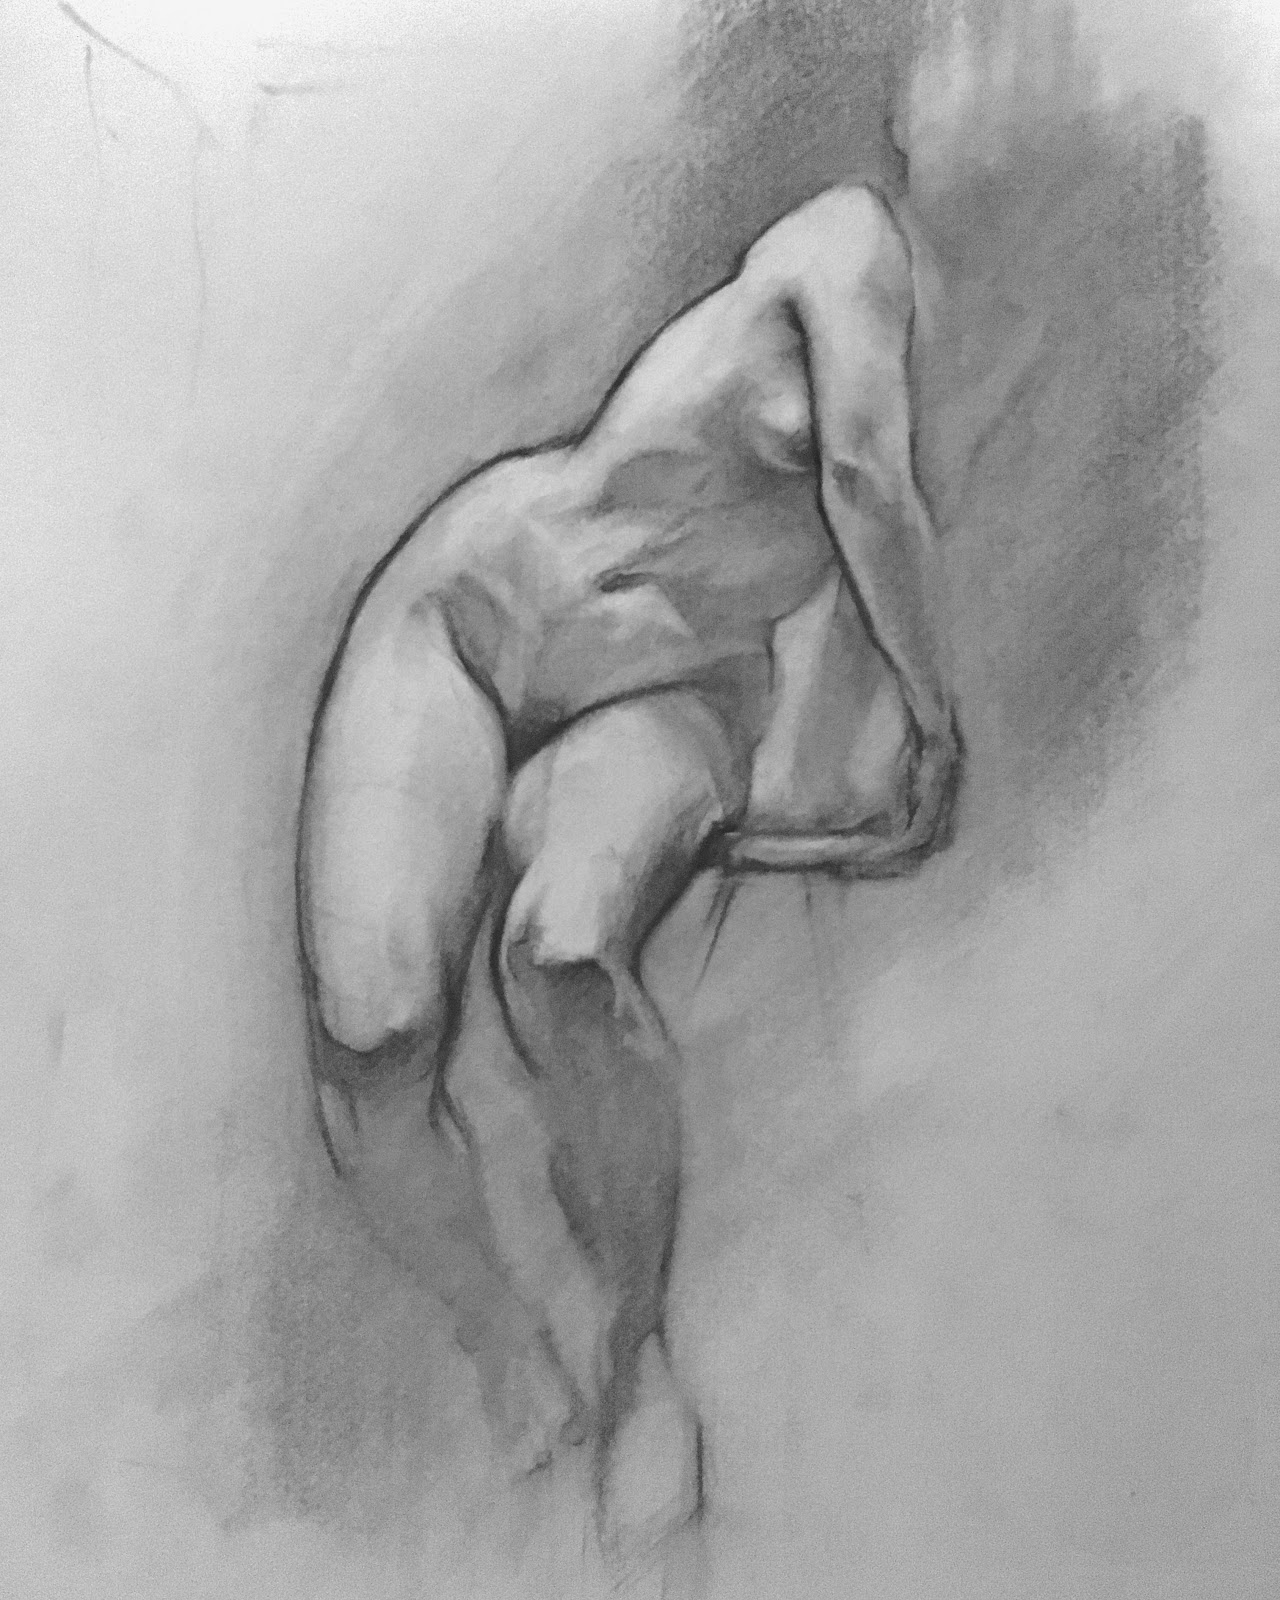 Sketch No.4 - Figure Sketch, Charcoal on Paper, sold